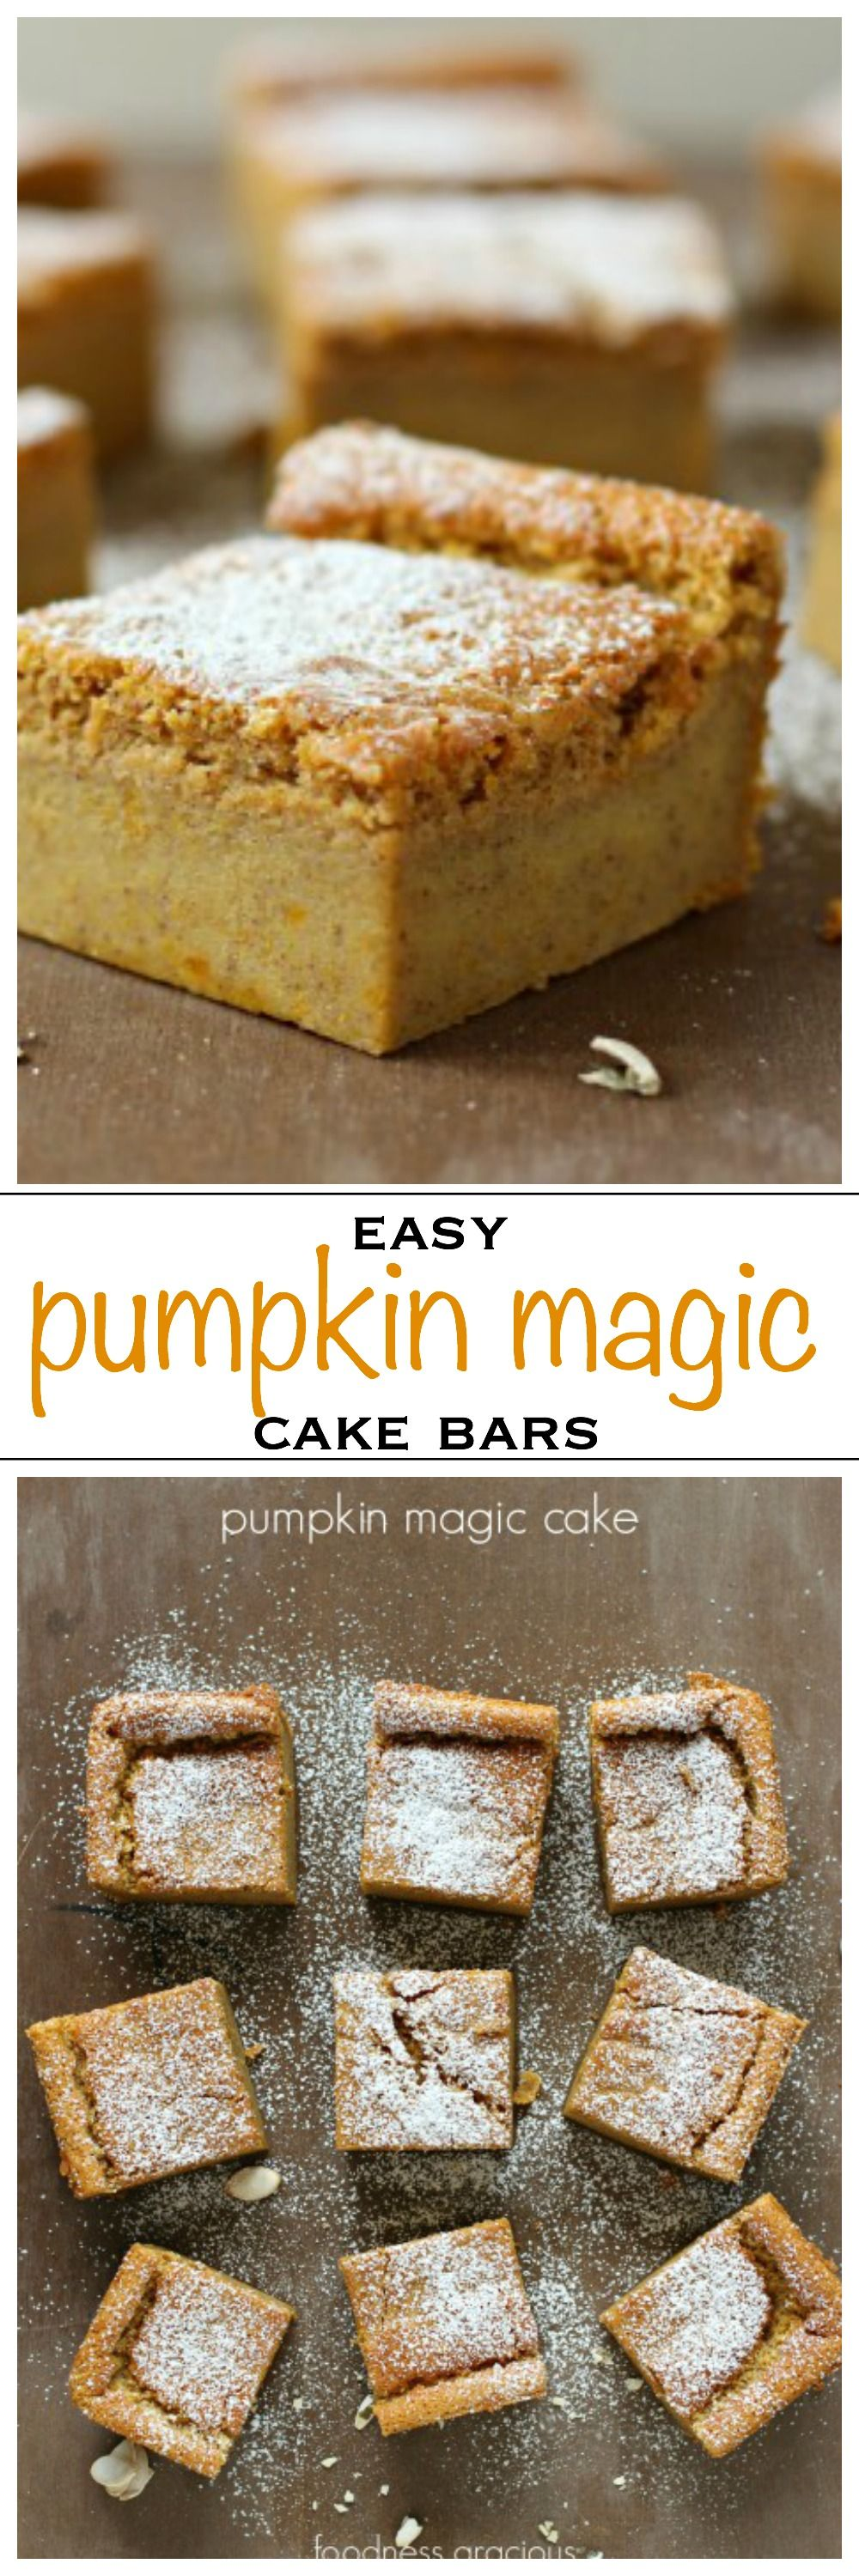 Pumpkin magic cake light and creamy with layers of texture pumpkin magic cake light and creamy with layers of texture foodness gracious aloadofball Gallery